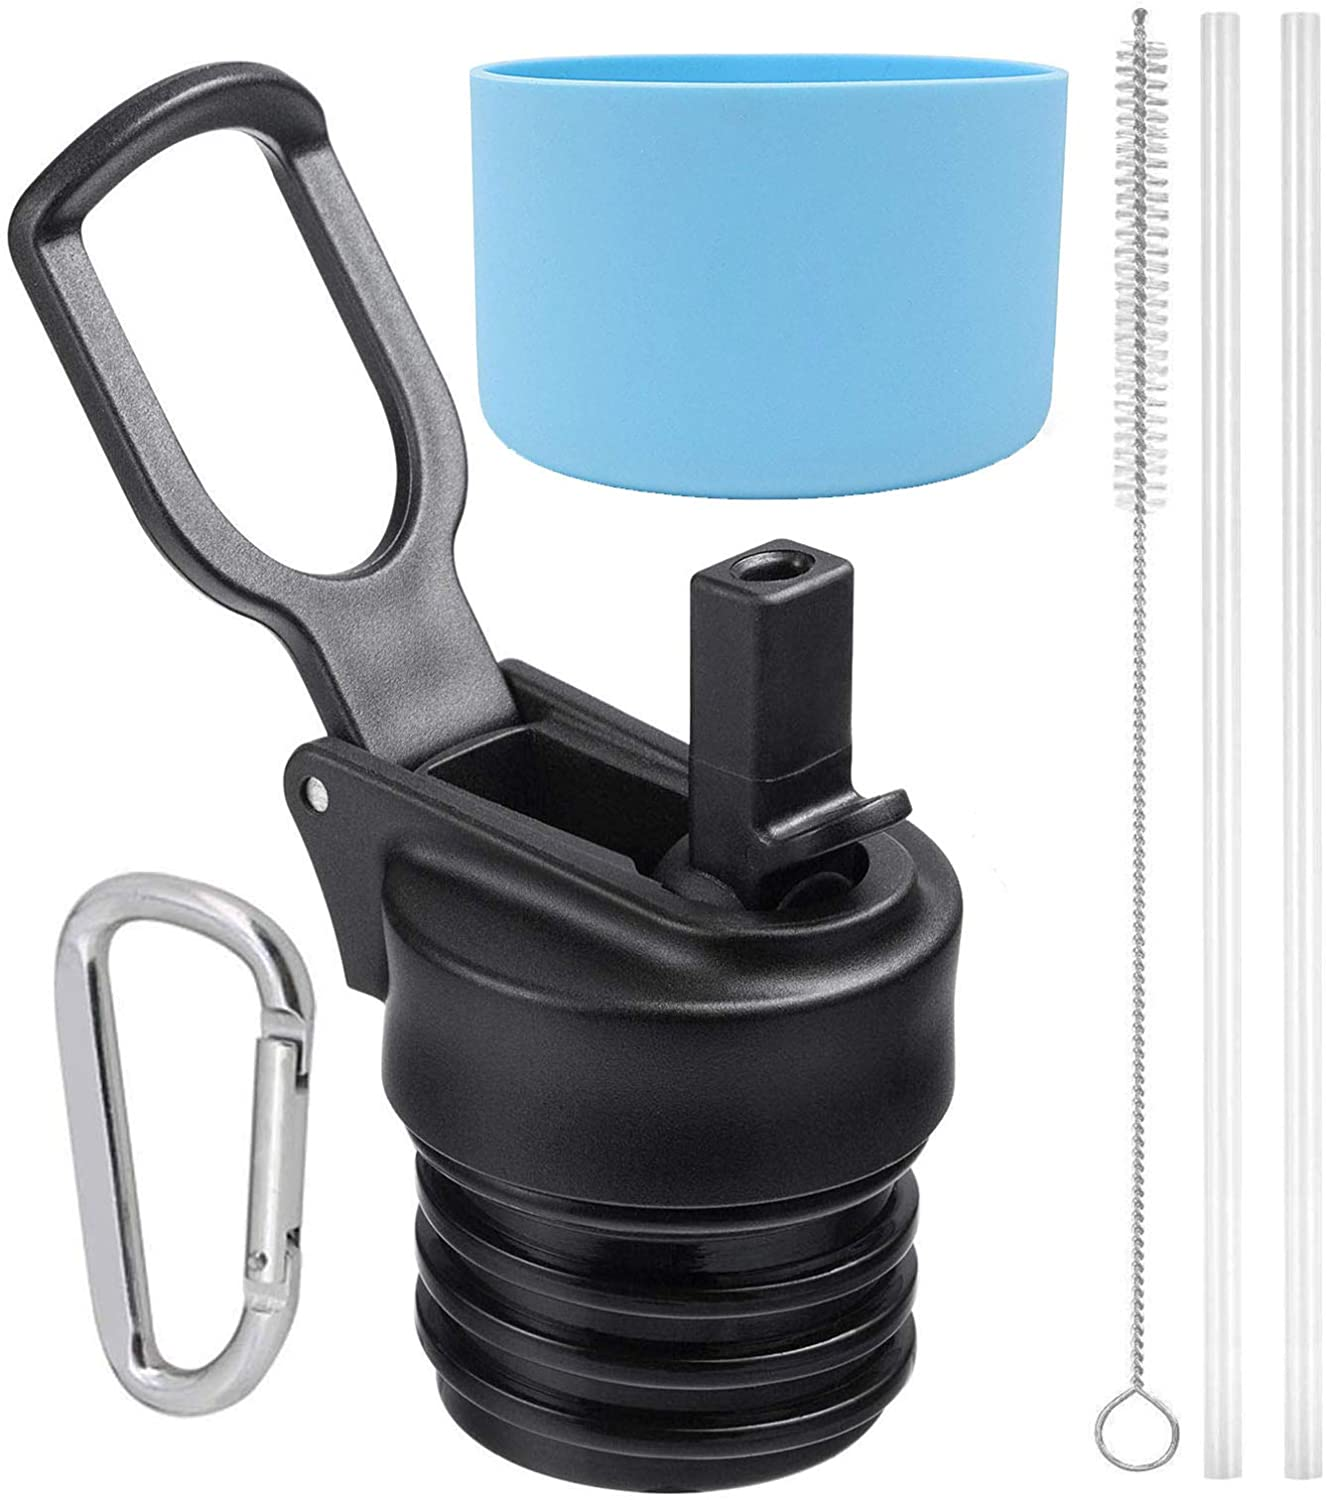 One MissionX Straw Lid & Silicone Flex Boot Set, Compatible with Hydro Flask Standard Mouth 18, 21, 24 oz Water Bottle & Simple Modern Ascent Bottles. Leak Proof